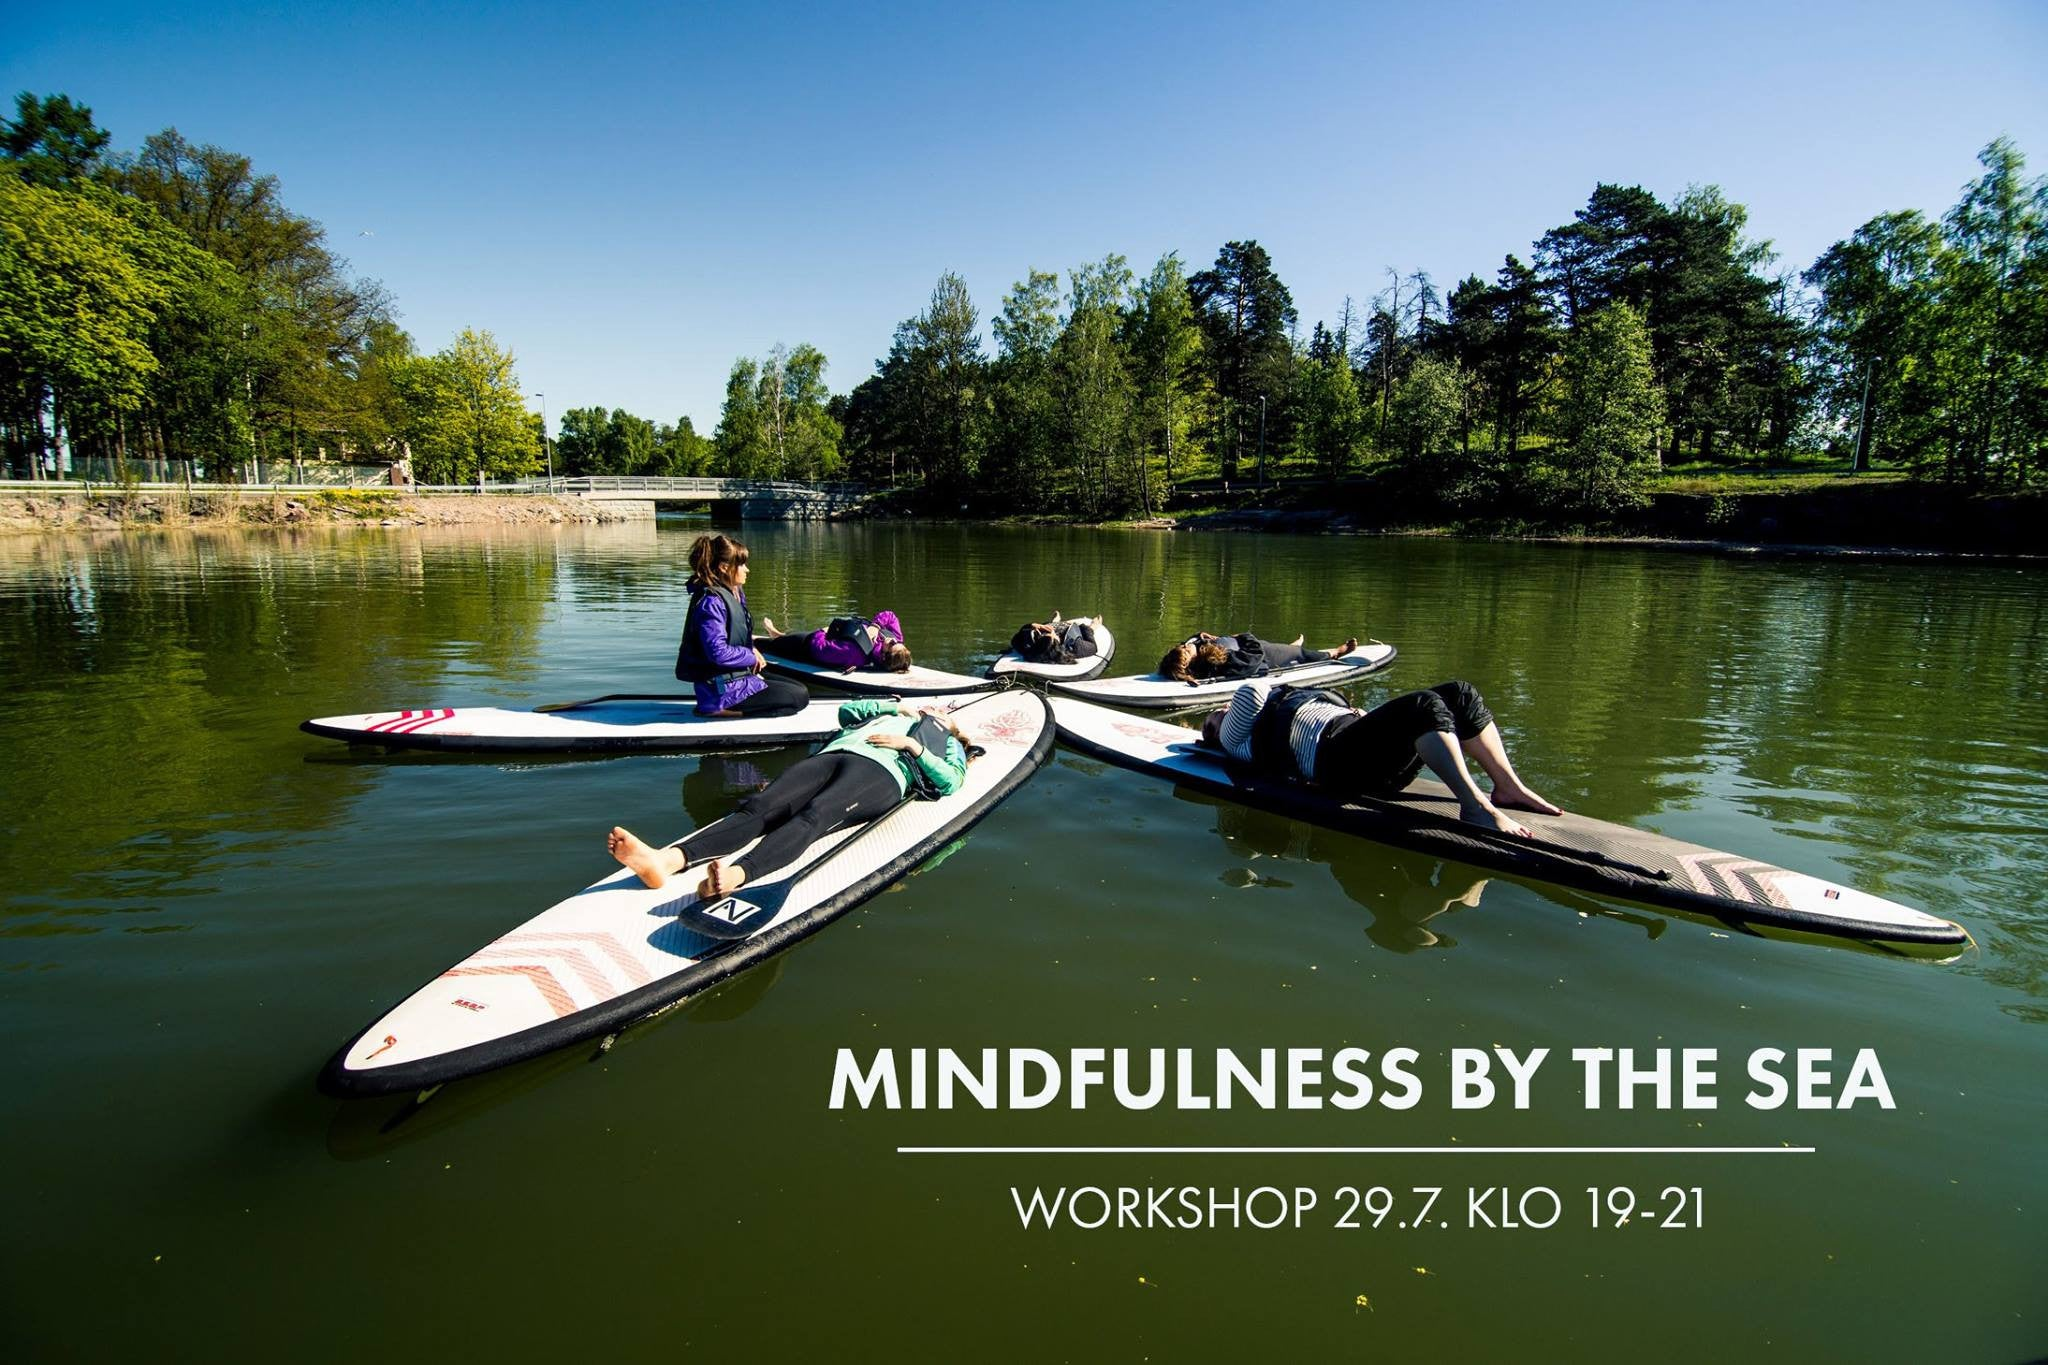 SUP & Mindfullness workshop